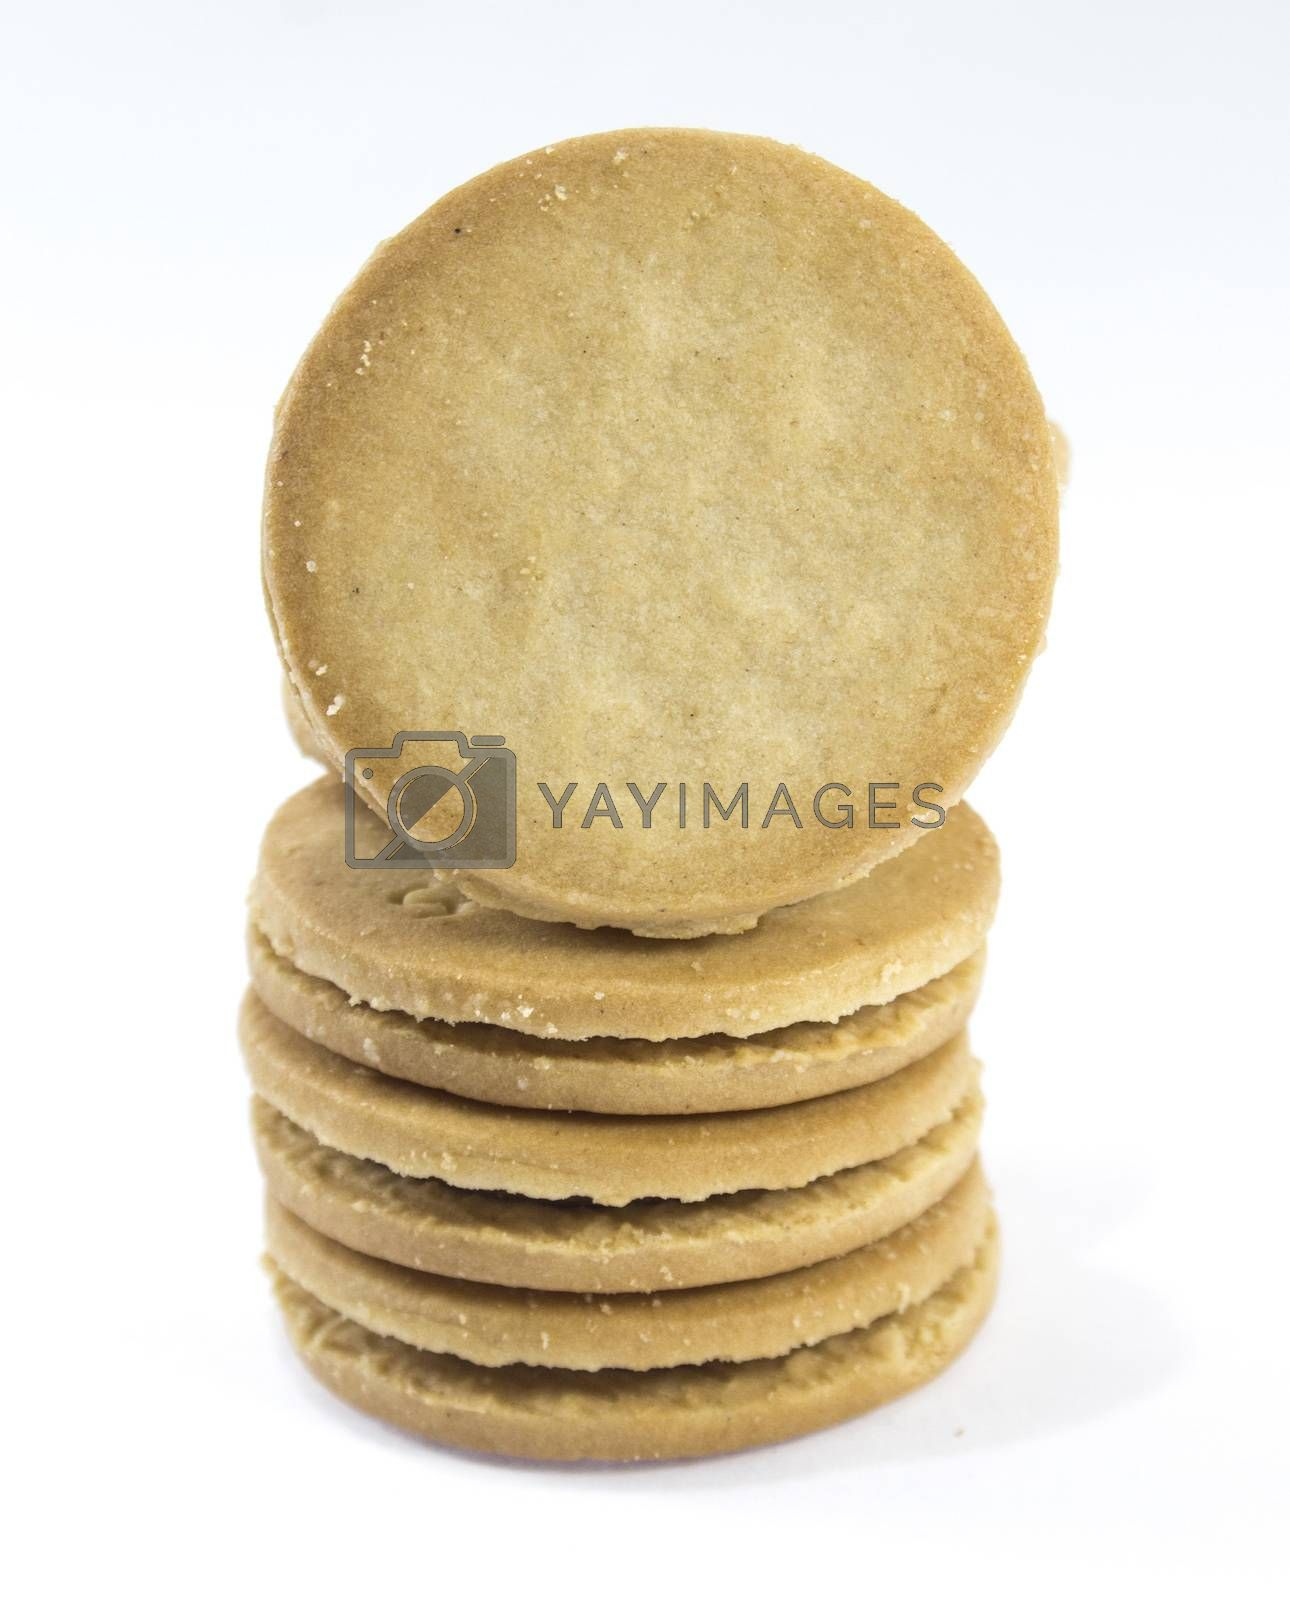 Sandwich biscuits, filled with chocolate, isolated on white background